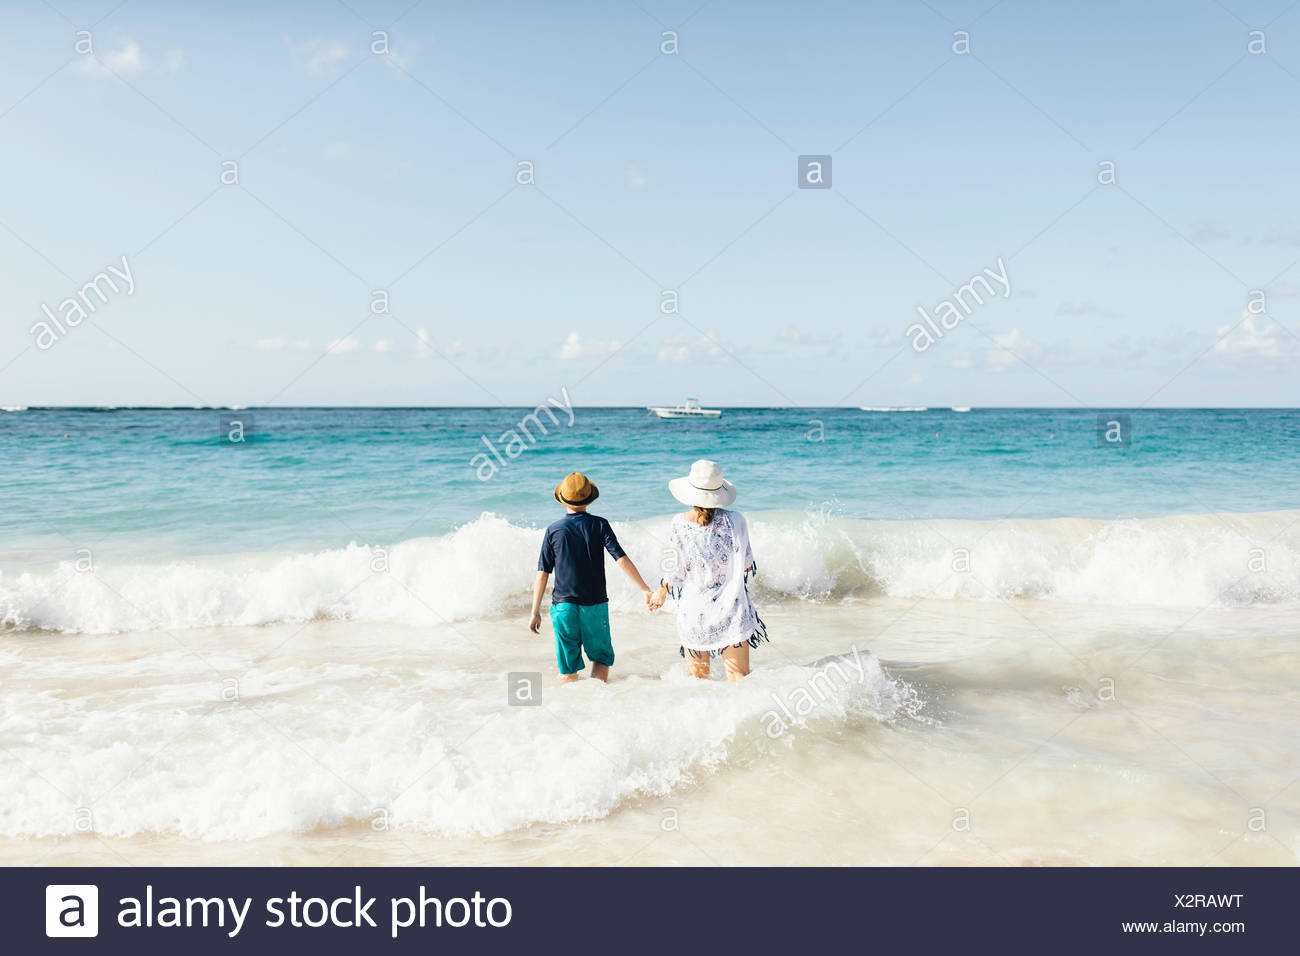 Mother and son, holding hands, standing in surf on beach, rear view - Stock Image